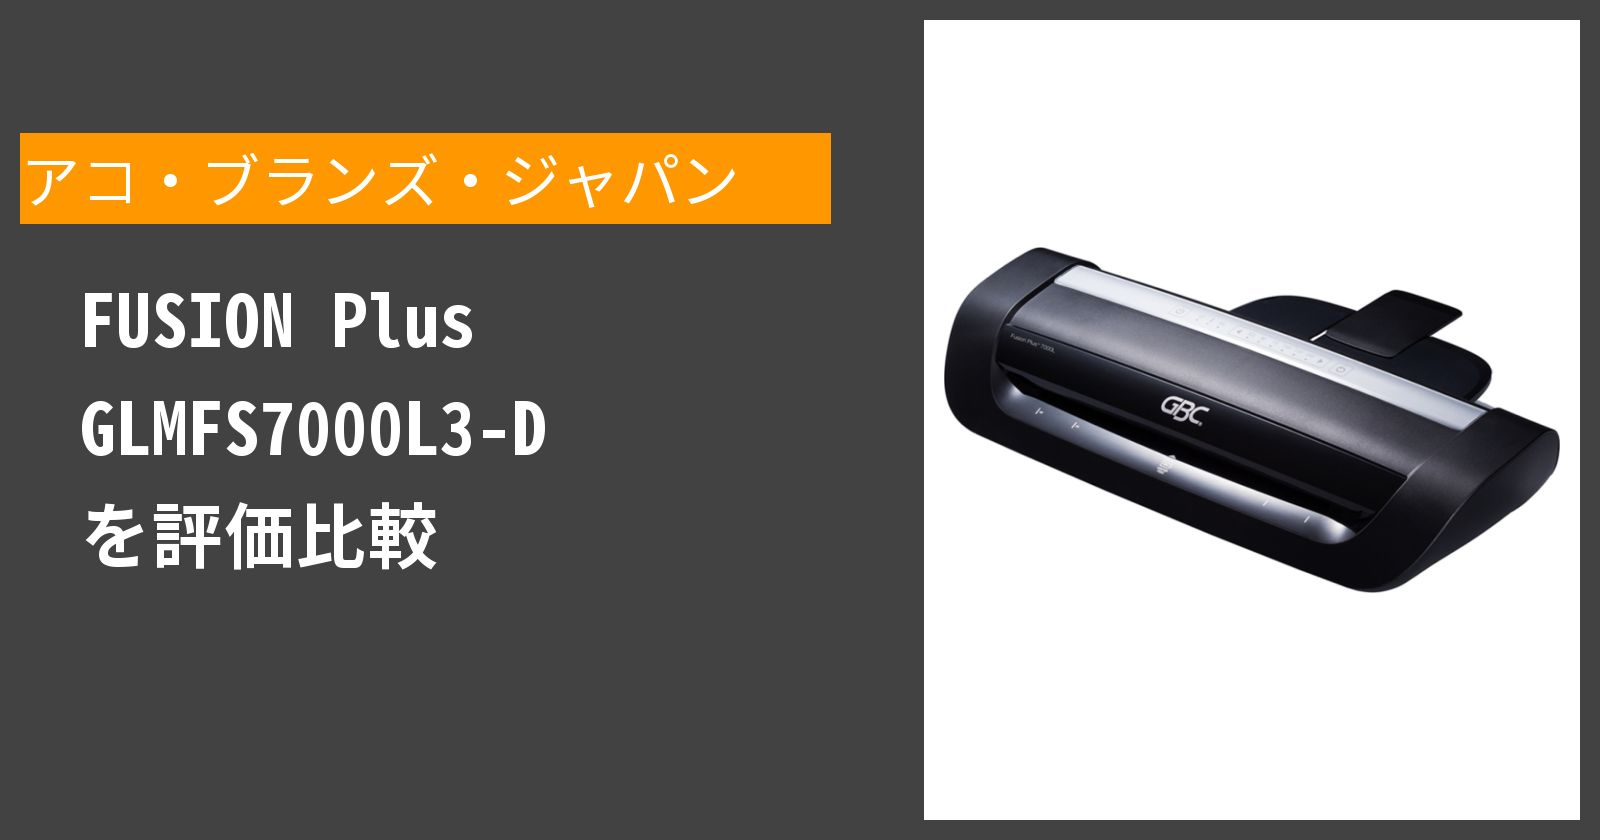 FUSION Plus GLMFS7000L3-Dを徹底評価